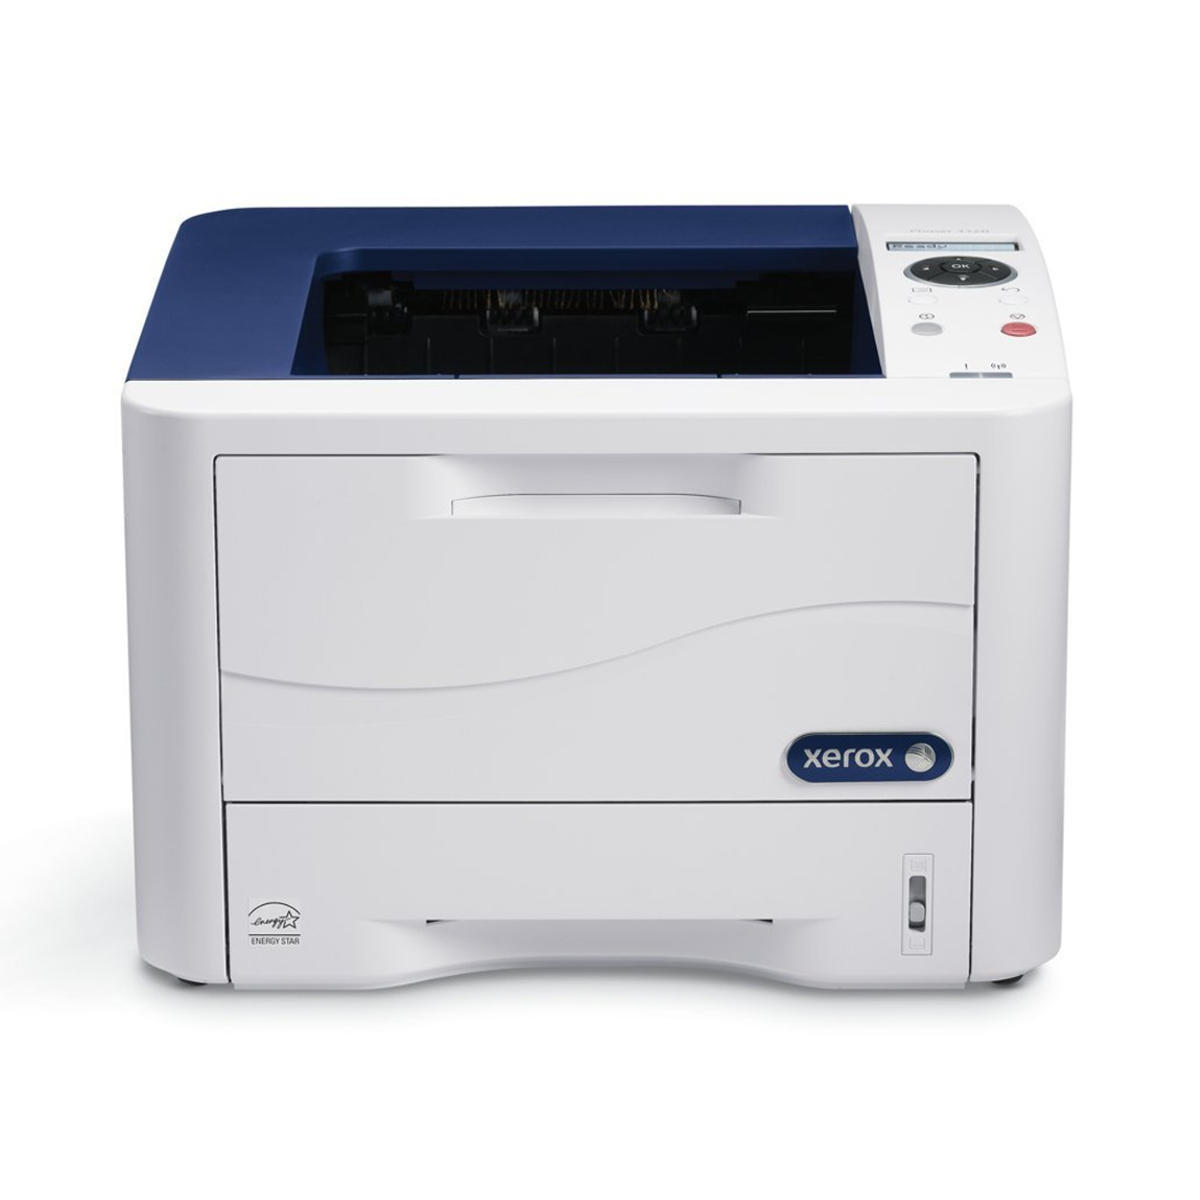 Xerox Phaser 3320/DNI Single Function Monochrome Laser Printer (Phaser 3320)